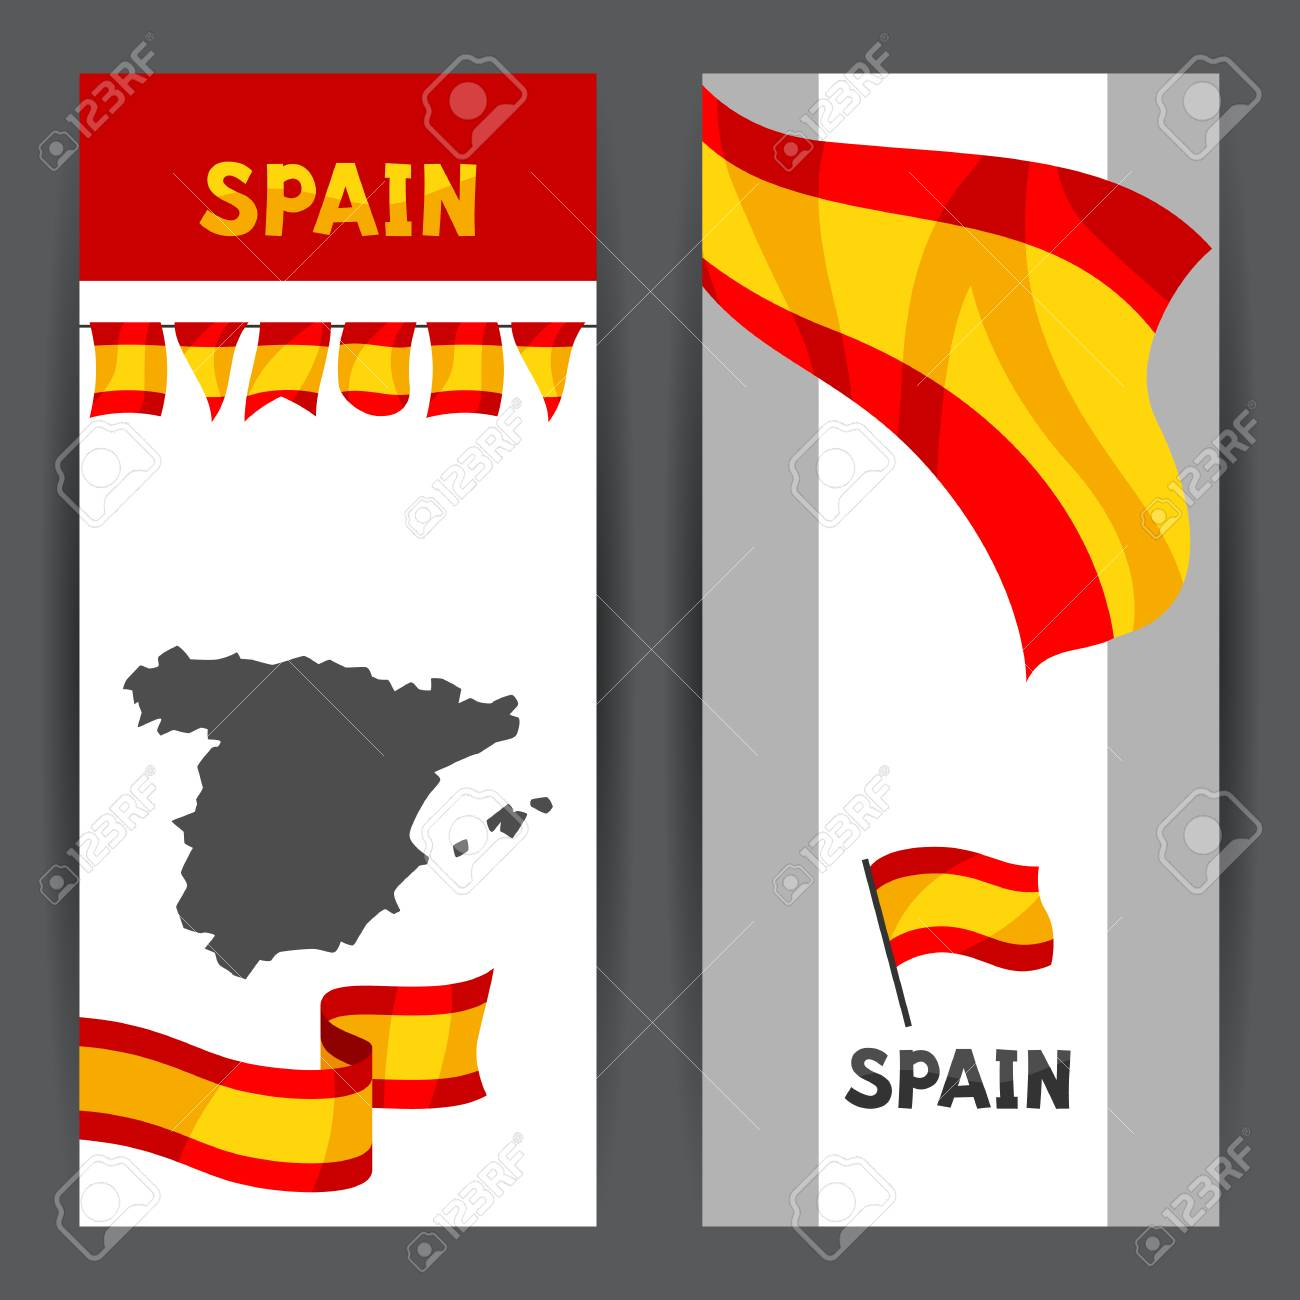 Spanish Map Of Spain.Banners With Flag And Map Of Spain Spanish Traditional Symbols